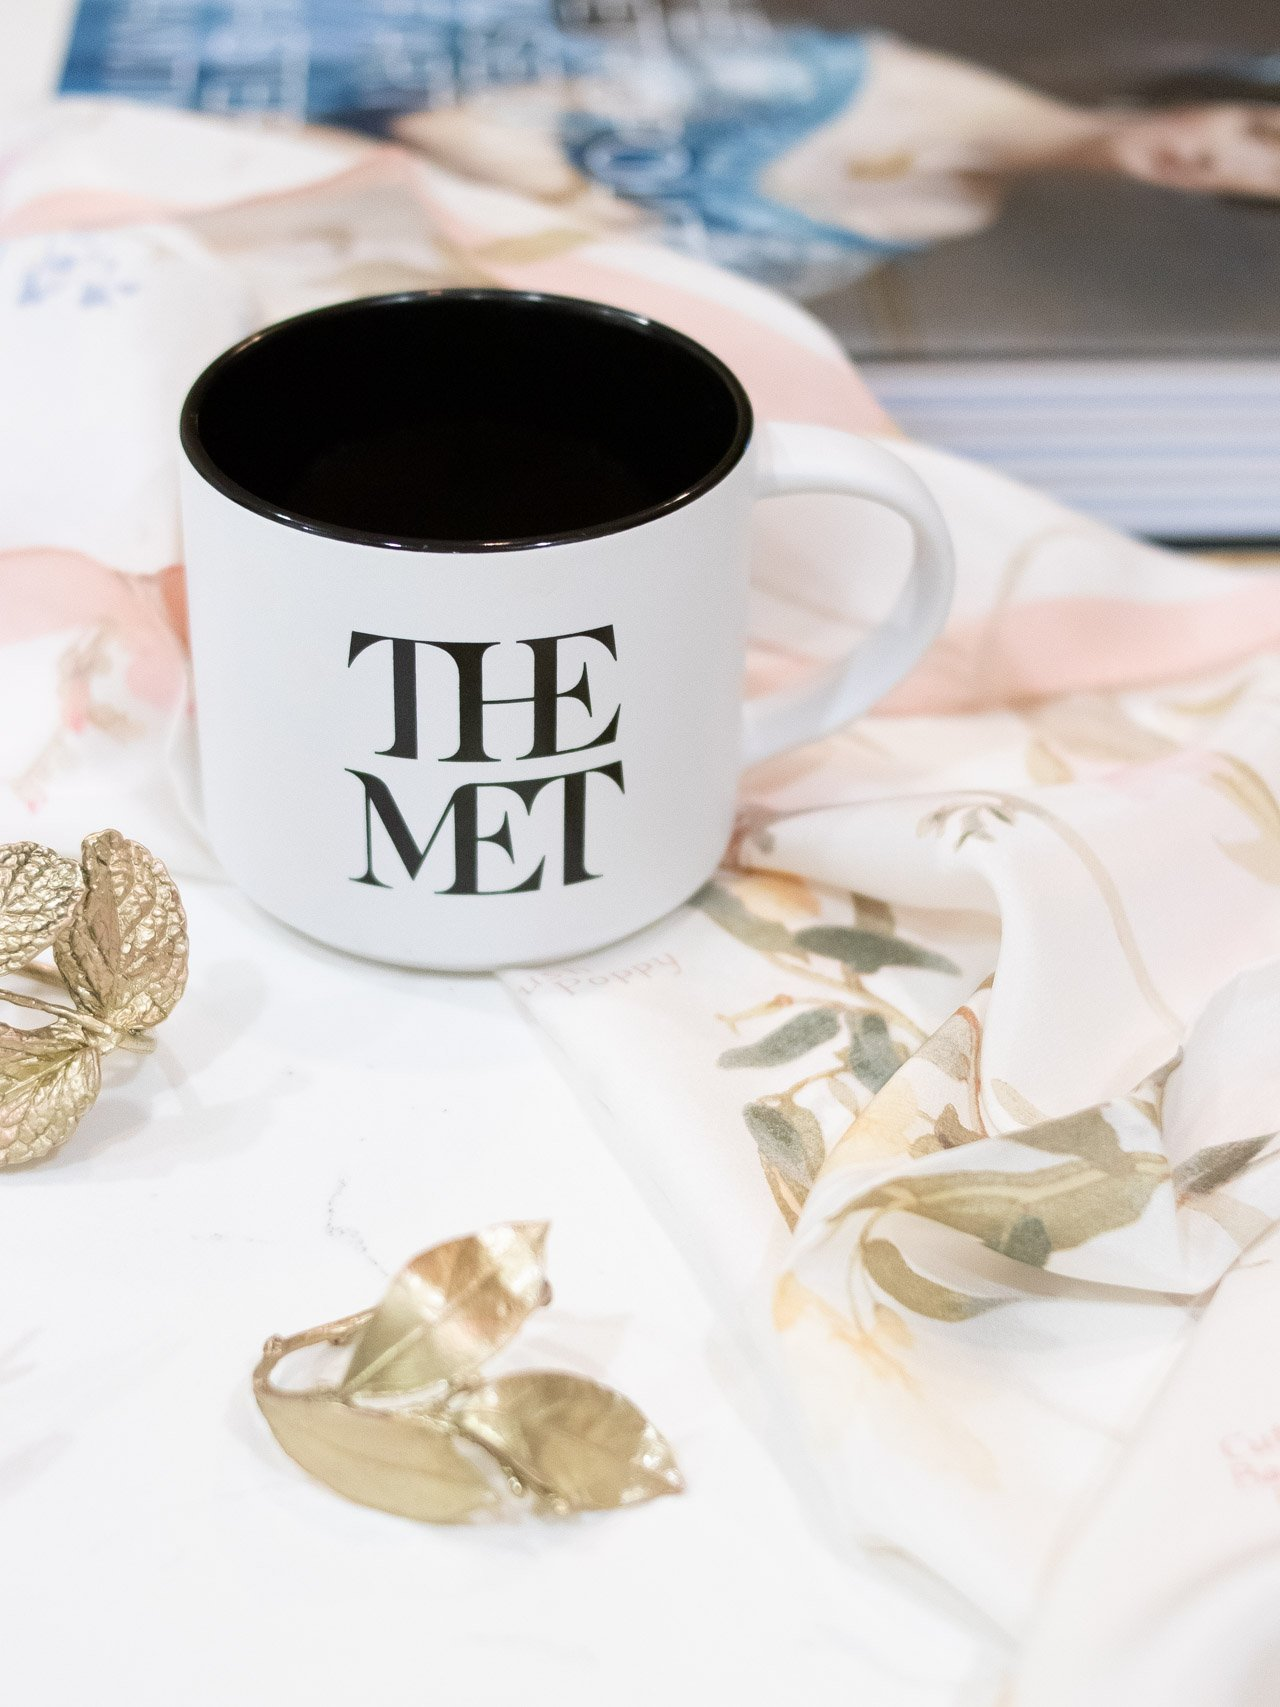 Shopping for someone who loves art? Finding the perfect art gift at The Met Store is easy. #TheMet #TheMetStore #giftguide